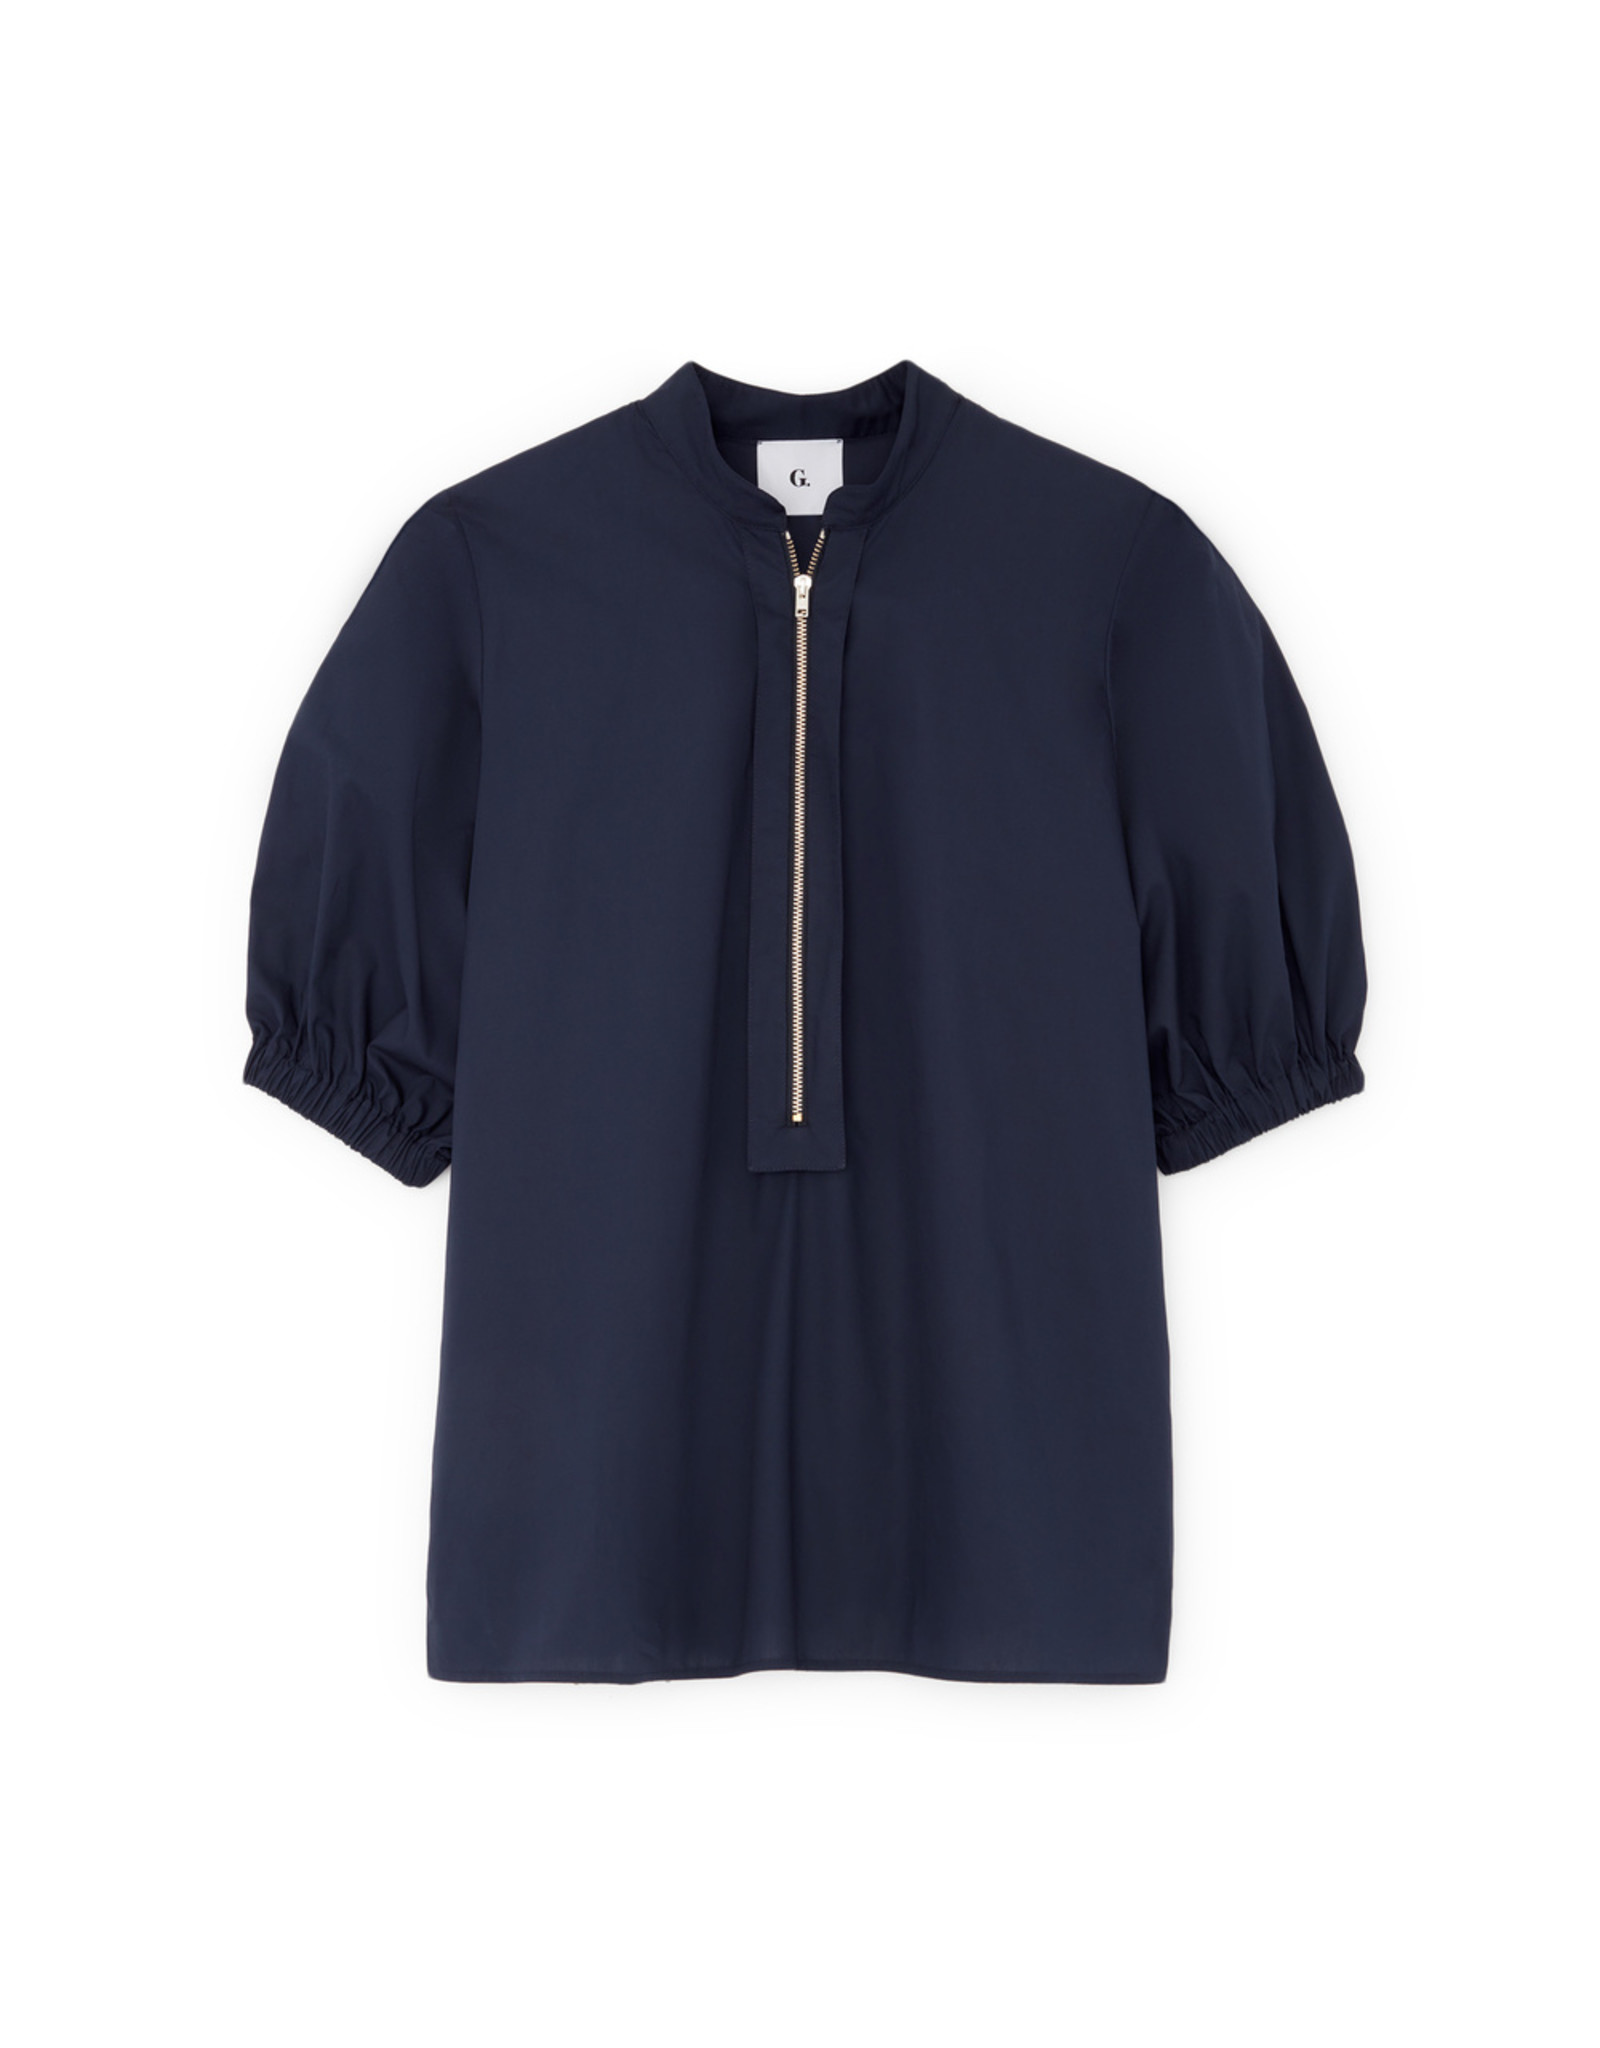 G. Label Anjelica Zip Front Top (Color: Navy, Size:4)